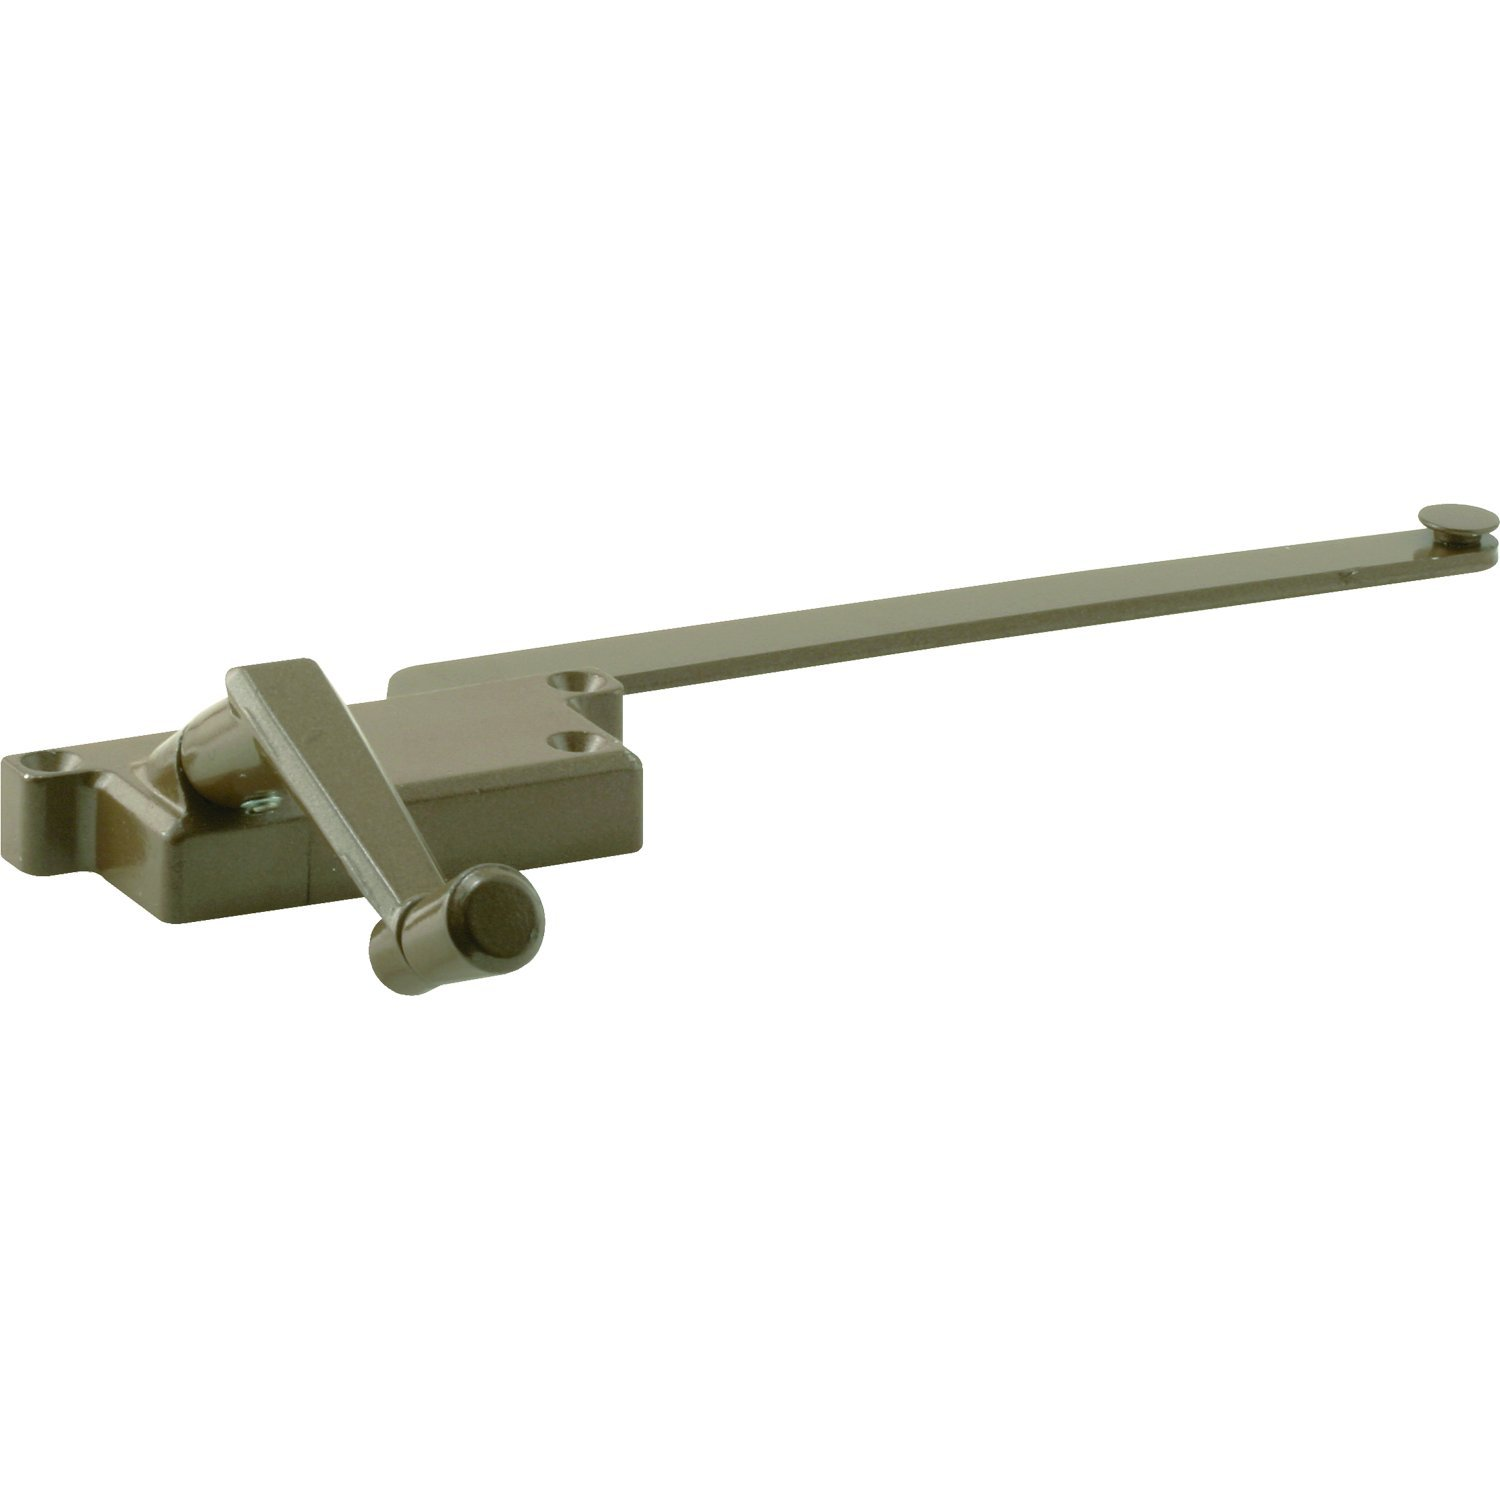 Slide-Co 17570-R Wood Casement Operator, 9 Inch, Diecast Square Housing, Bronze, Right Hand, Pack of 1